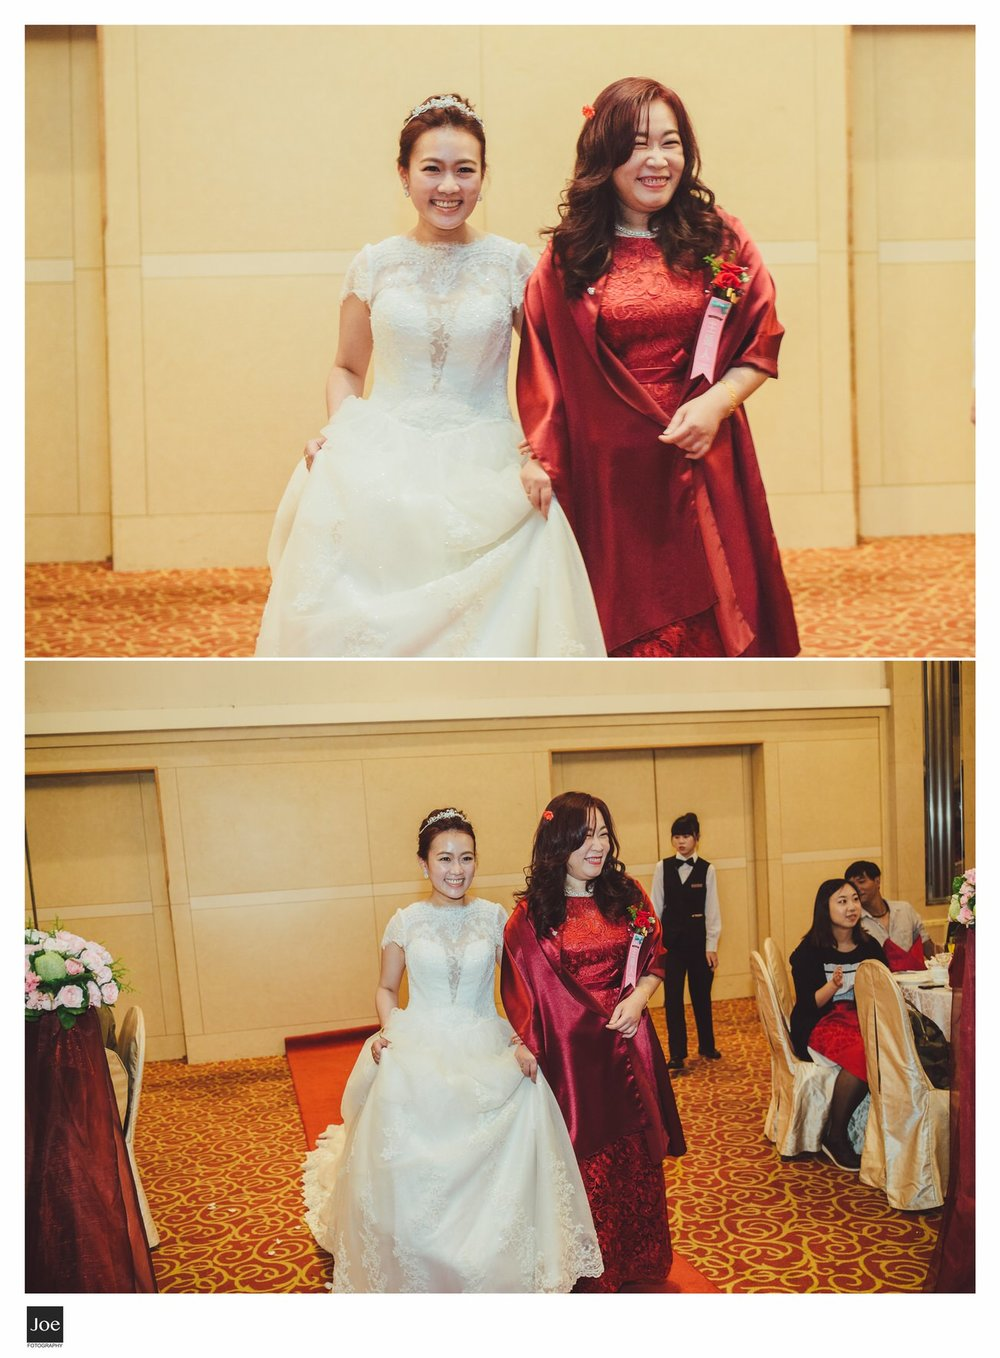 sunworld-dynasty-hotel-taipei-wedding-photo-joe-fotography-angel-jay-082.jpg